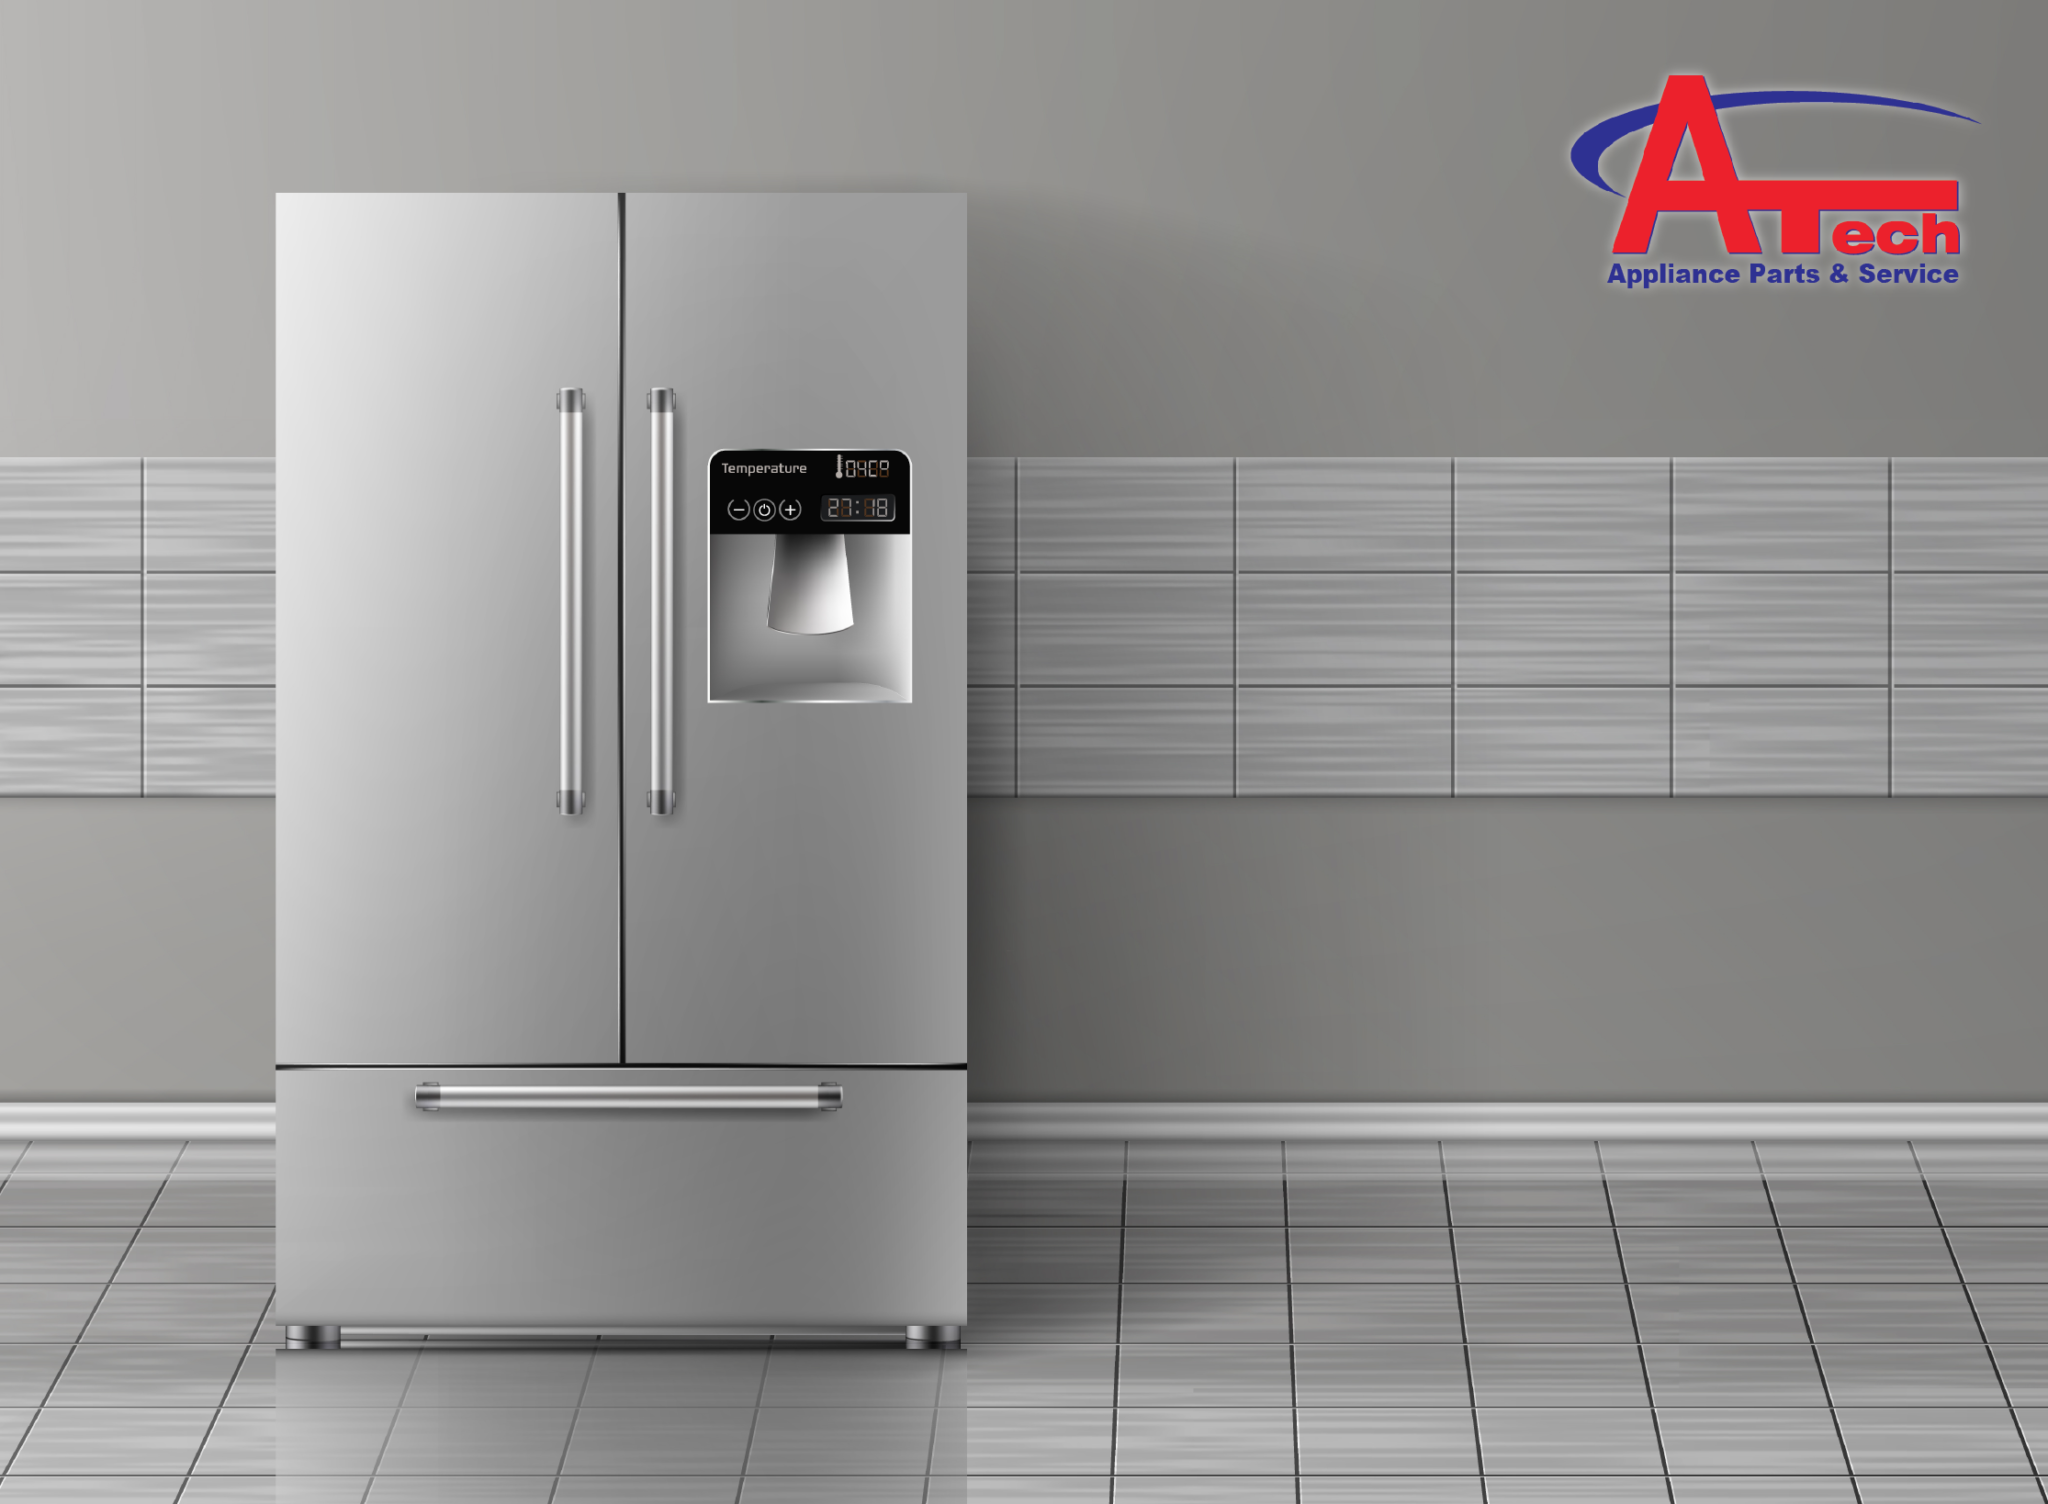 Freezer Repair with A-Tech